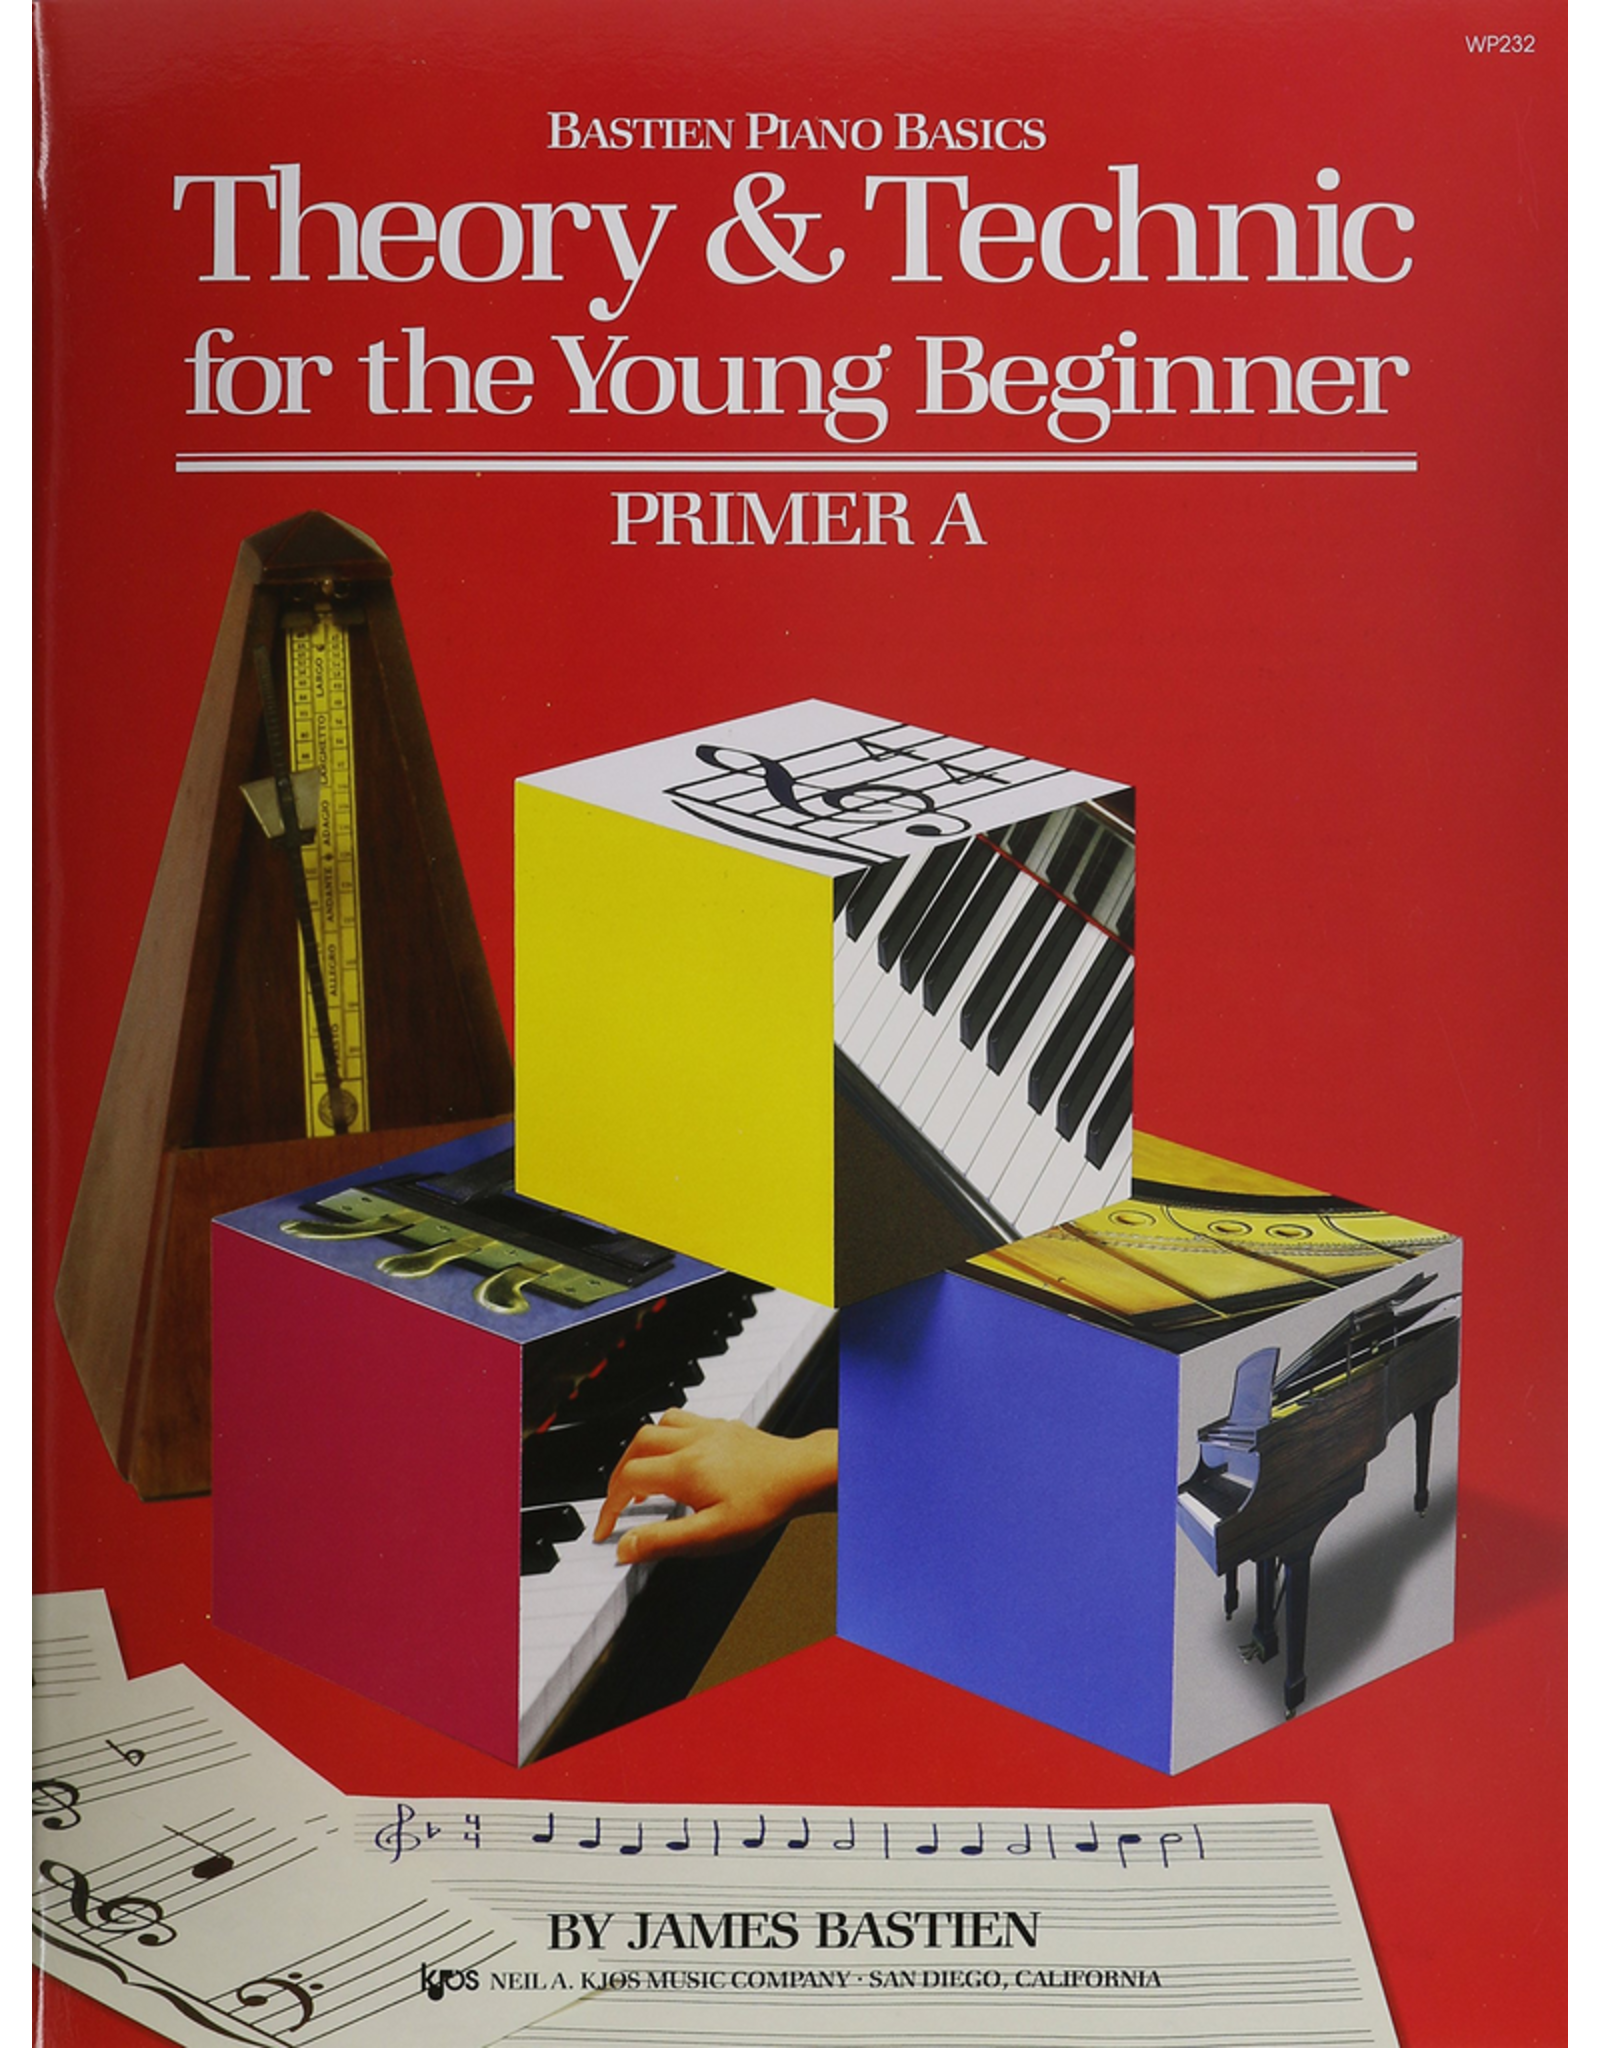 Kjos Bastien Piano Basics Theory & Technic for the Young Beginner Primer A